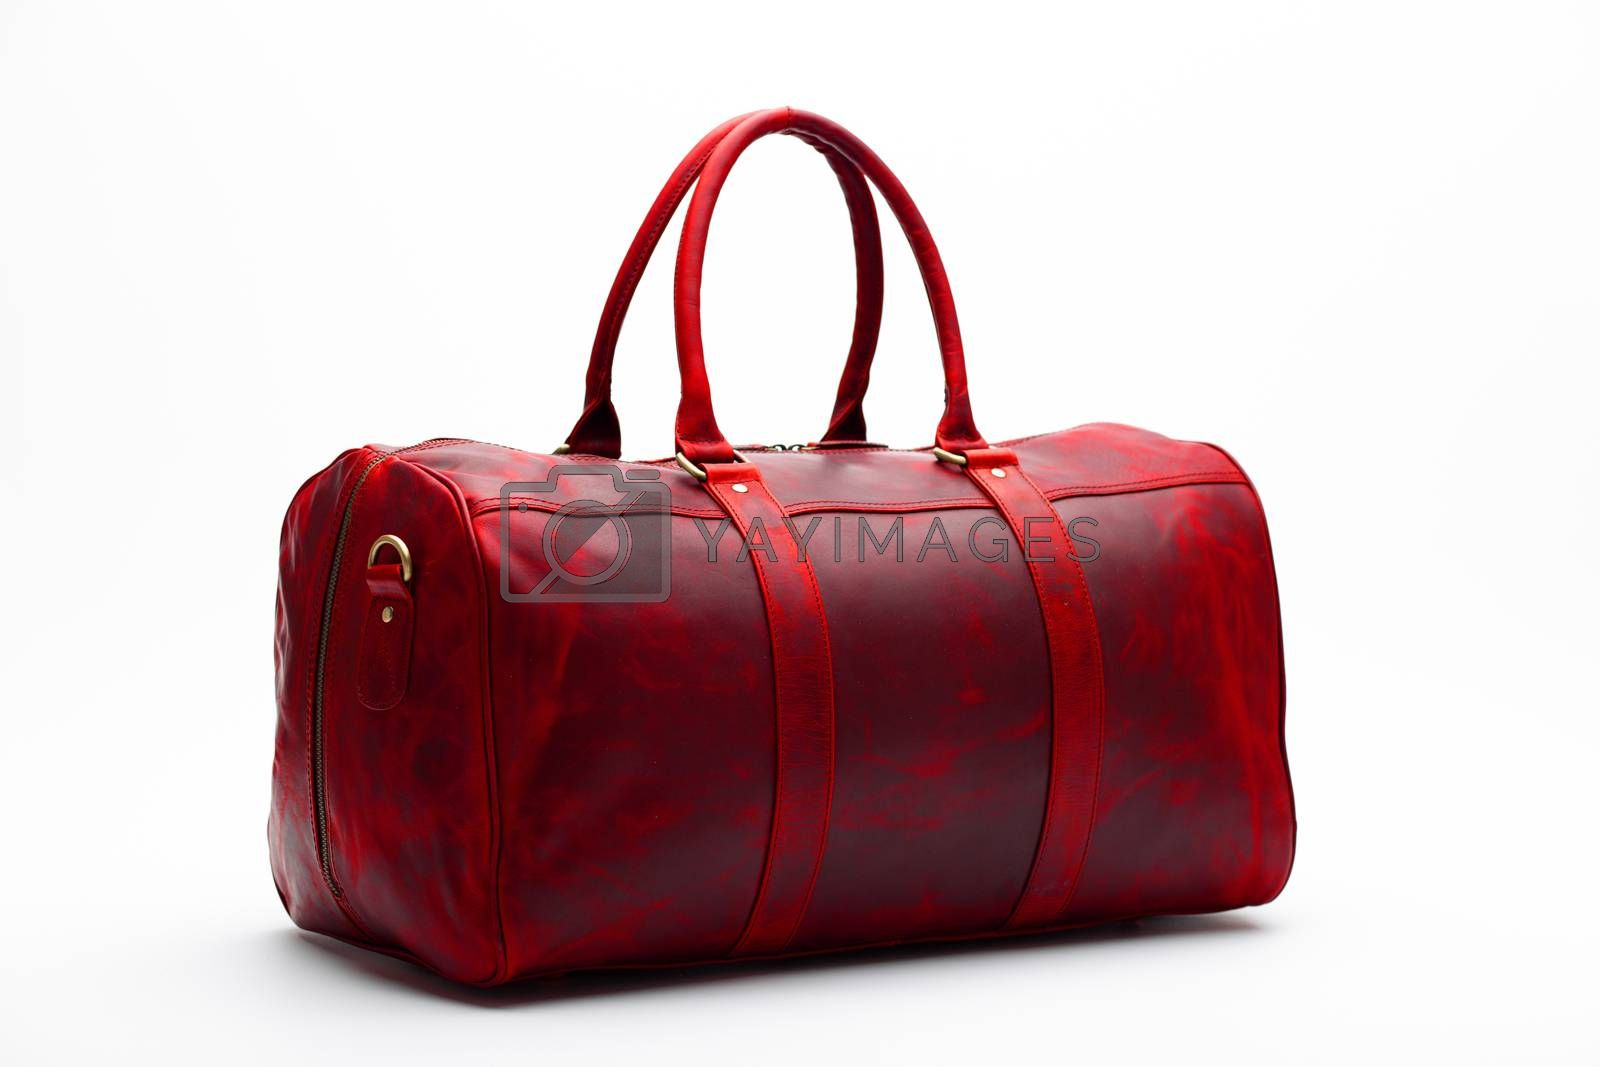 duffel bag travel case leather holdall valise fashion modern by Tim Wit